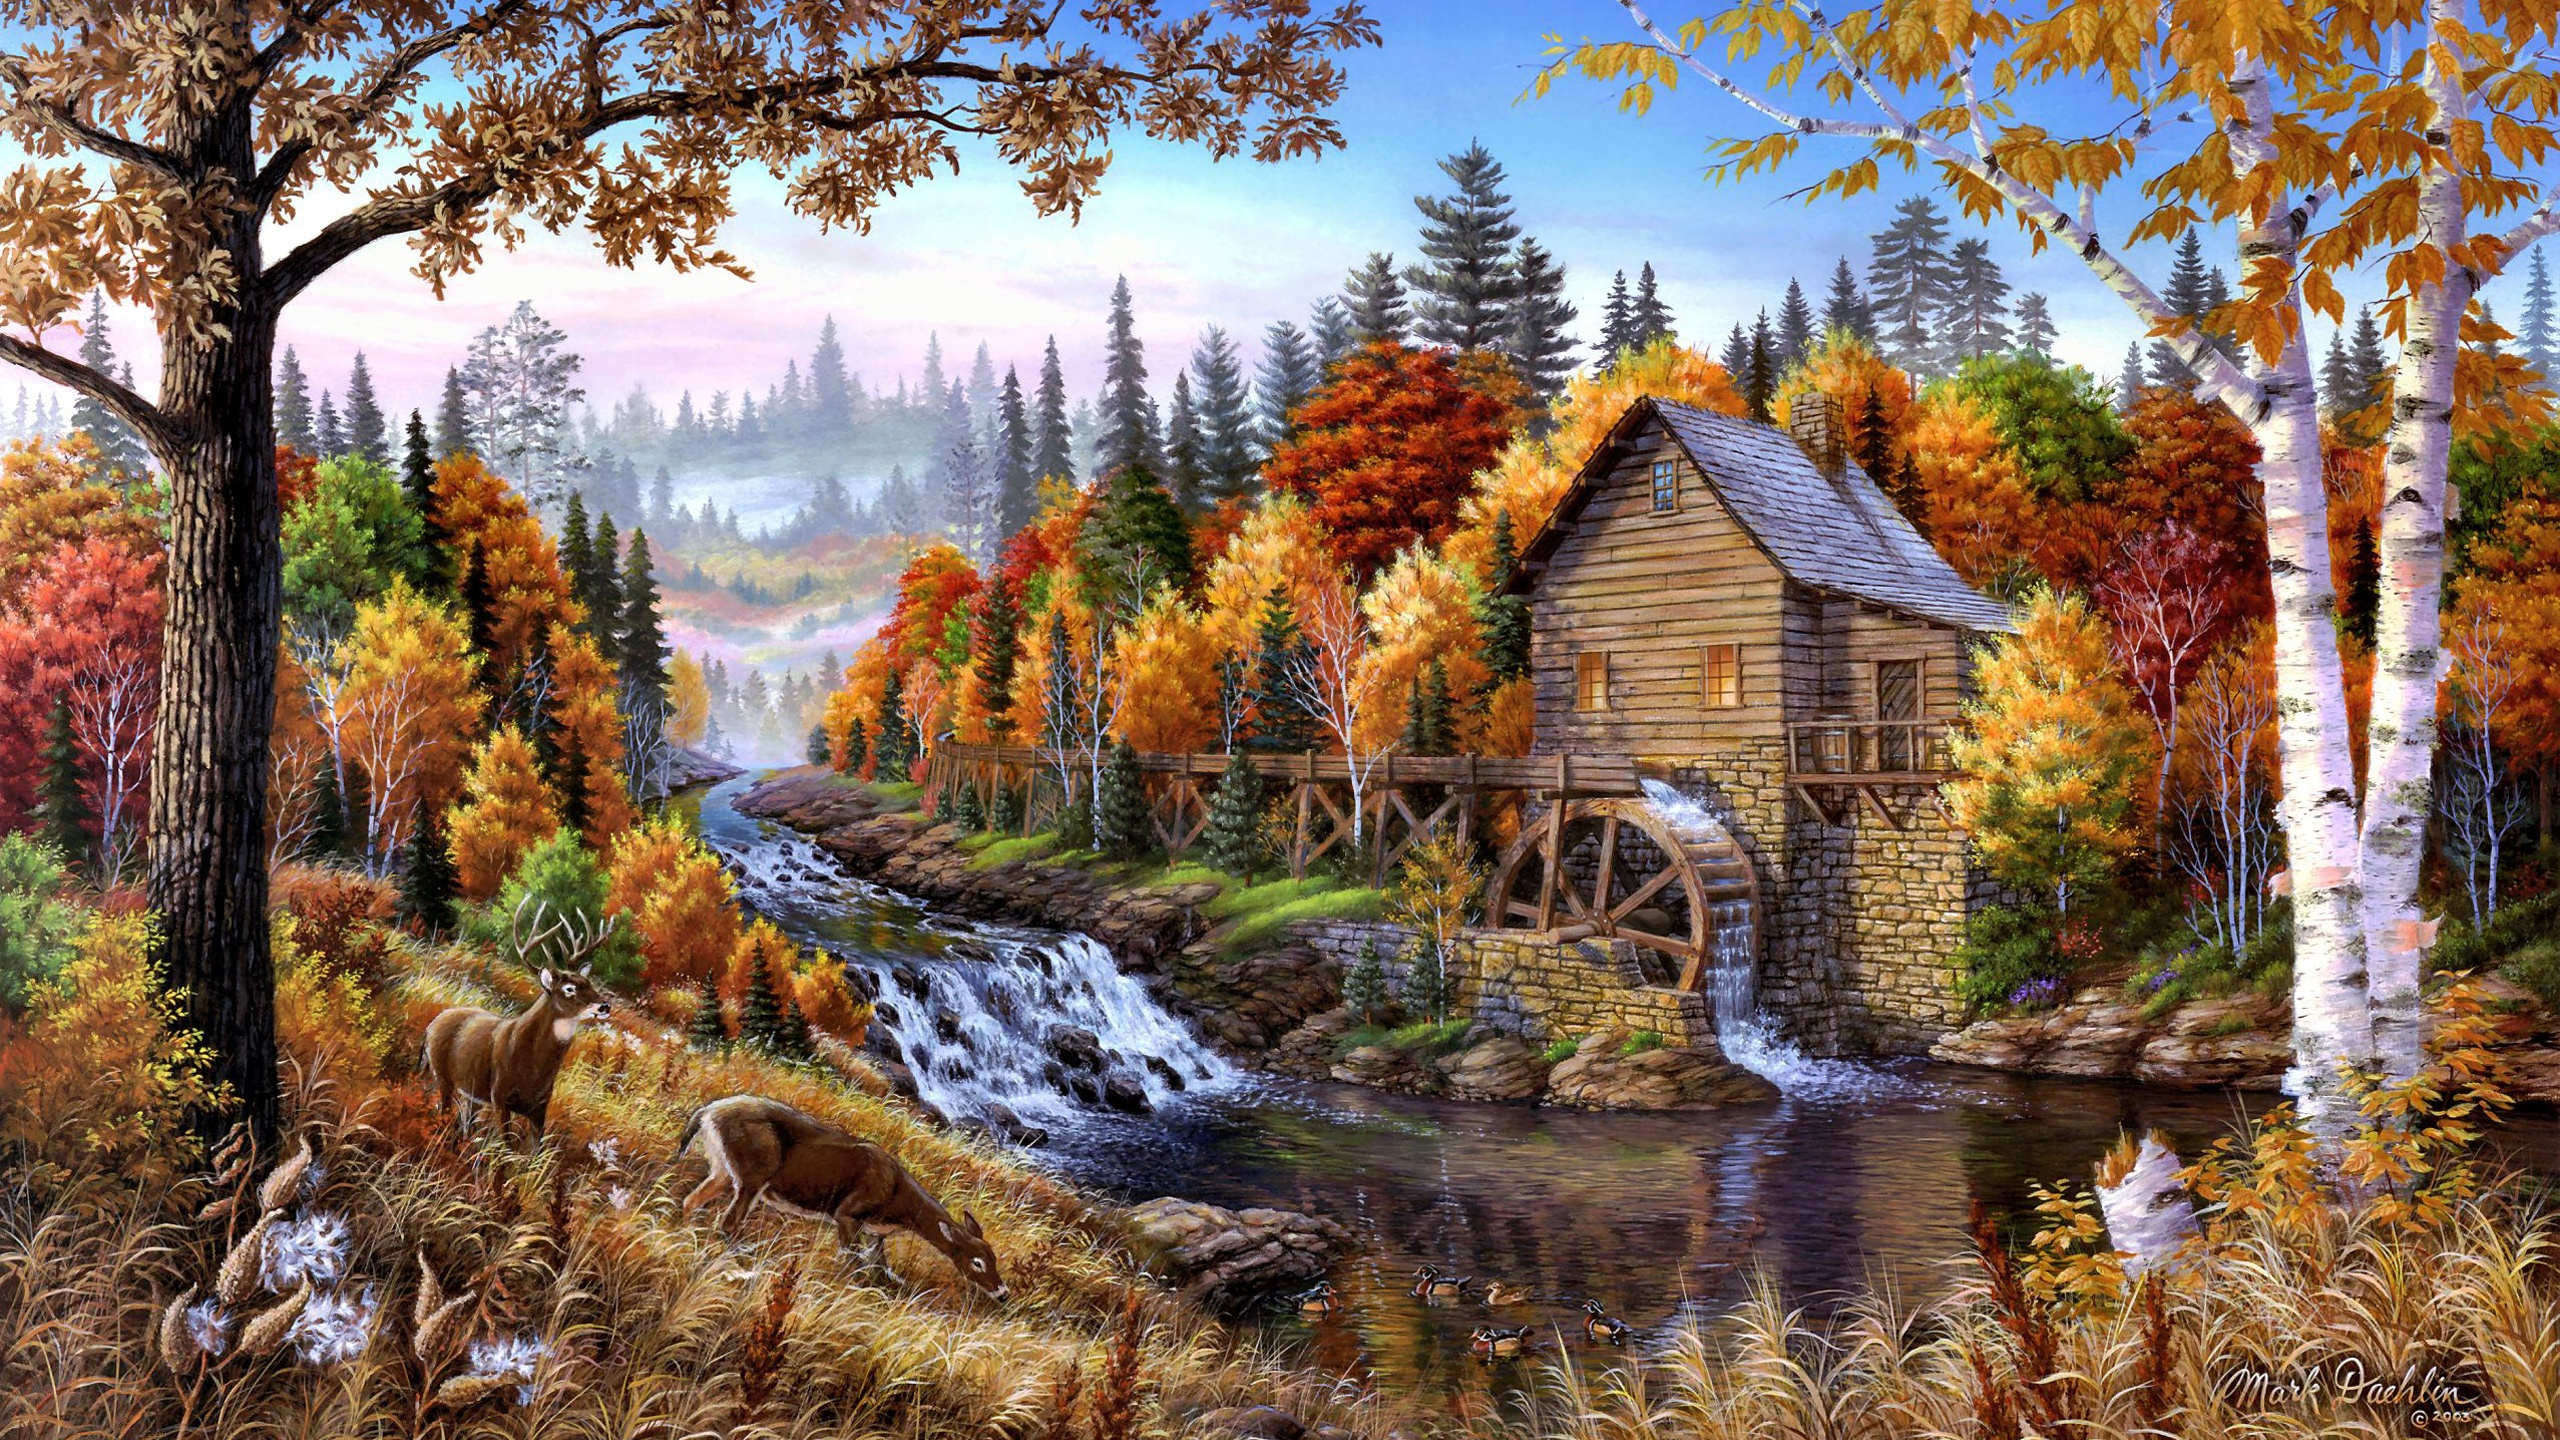 Download Wallpaper 2560x1440 Home In The Forest Oil